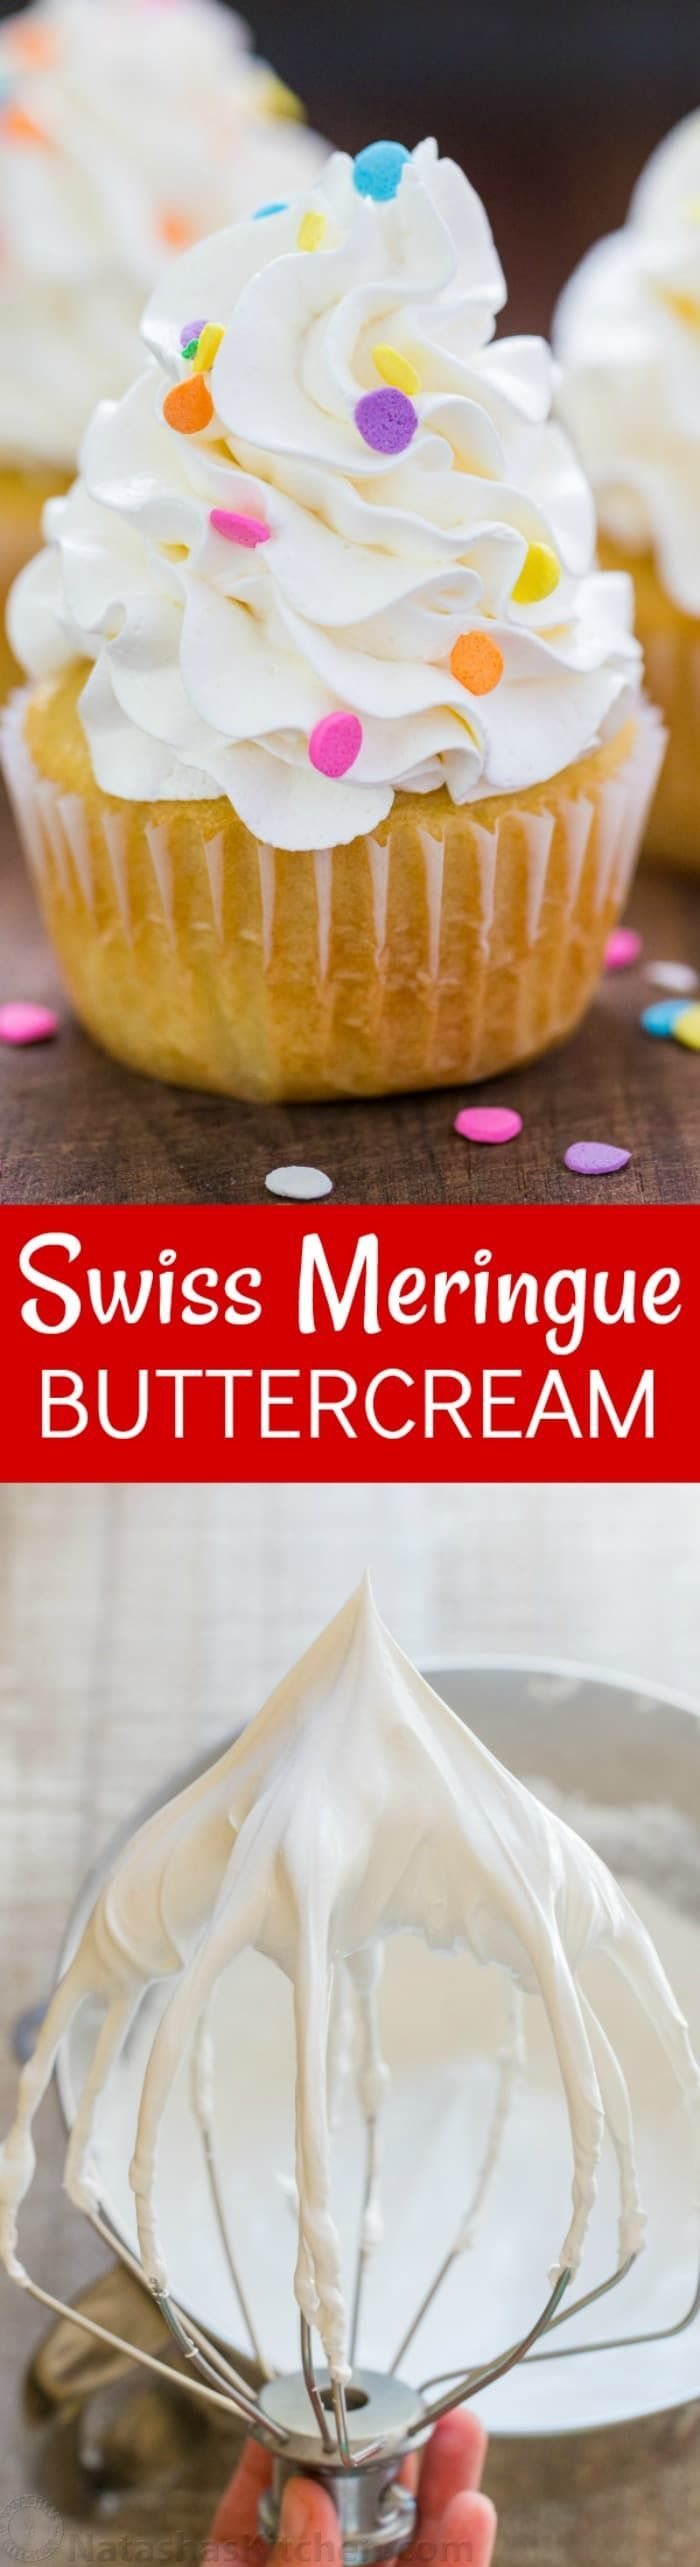 Swiss Meringue Buttercream will become your go-to buttercream frosting. Swiss meringue buttercream is silky and pipes beautifully on cakes and cupcakes   natashaskitchen.com #buttercream